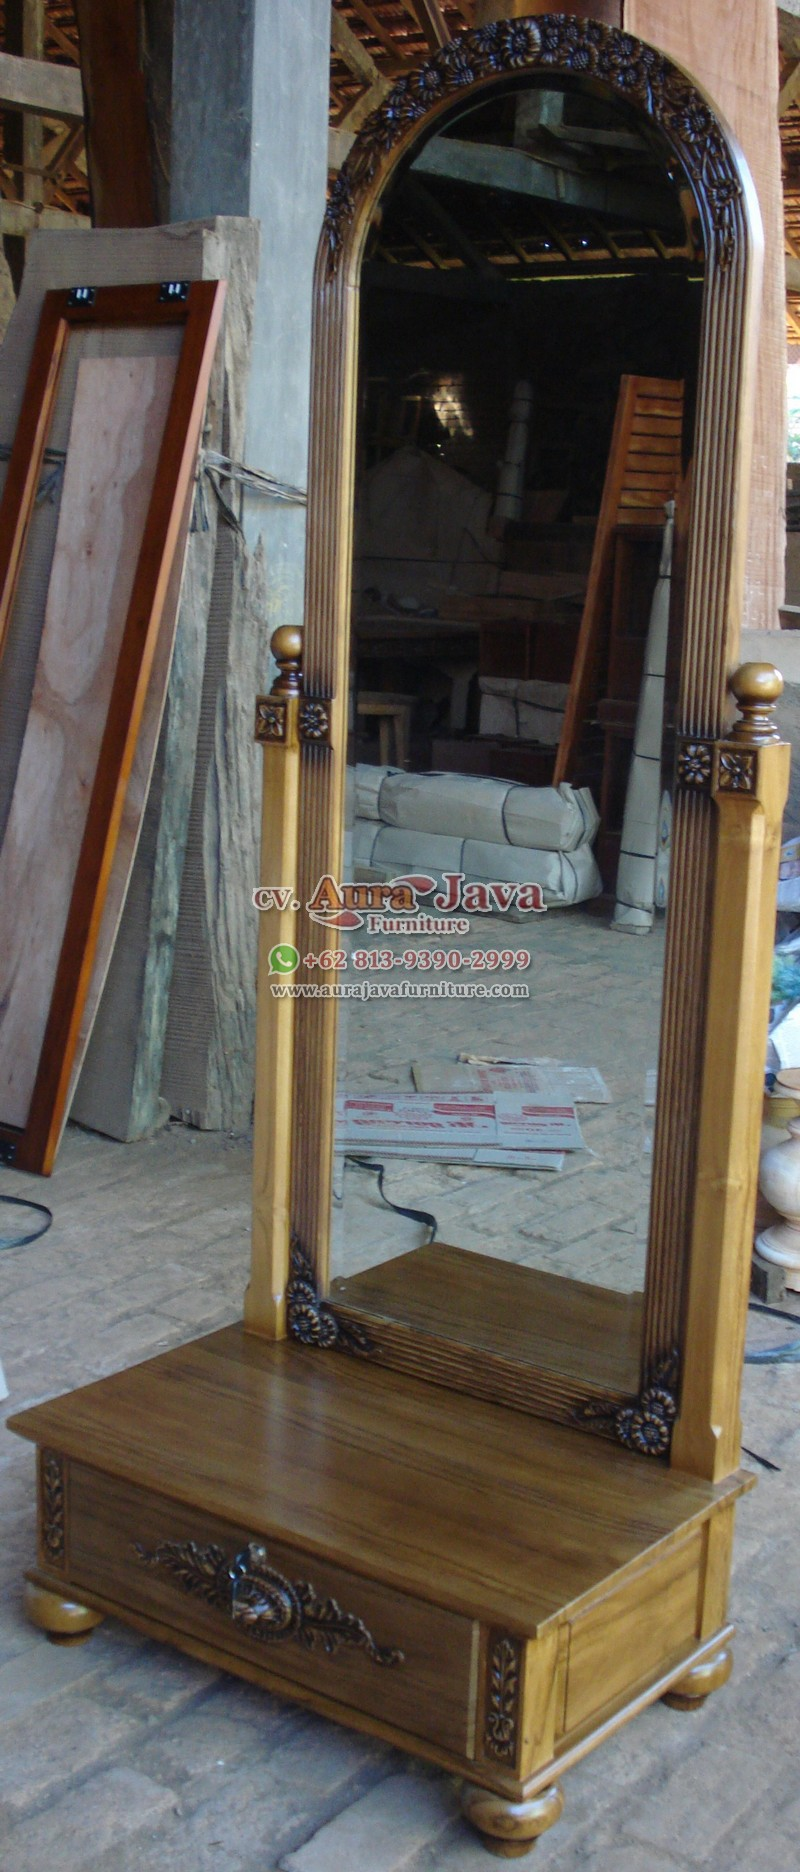 indonesia-teak-furniture-store-catalogue-mirrored-aura-java-jepara_019